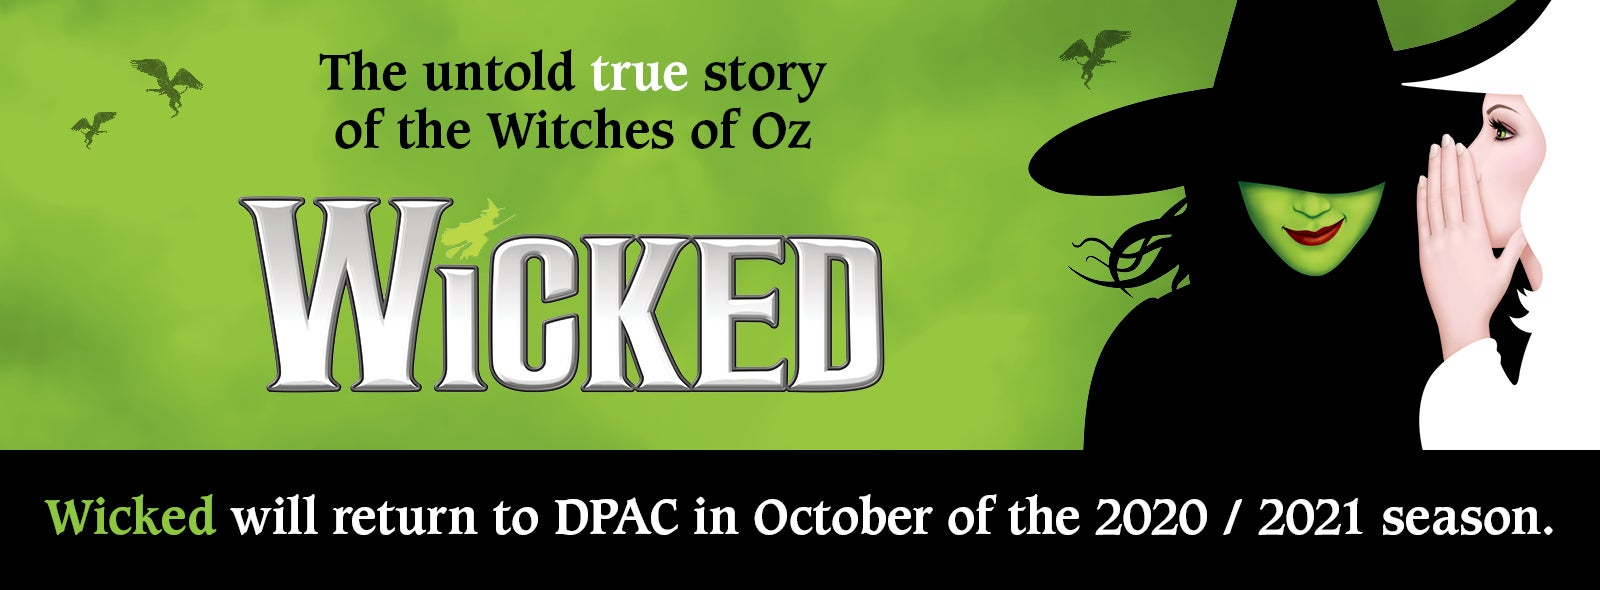 Wicked Tour 2020.Wicked Will Return To Dpac In October Of The 2020 2021